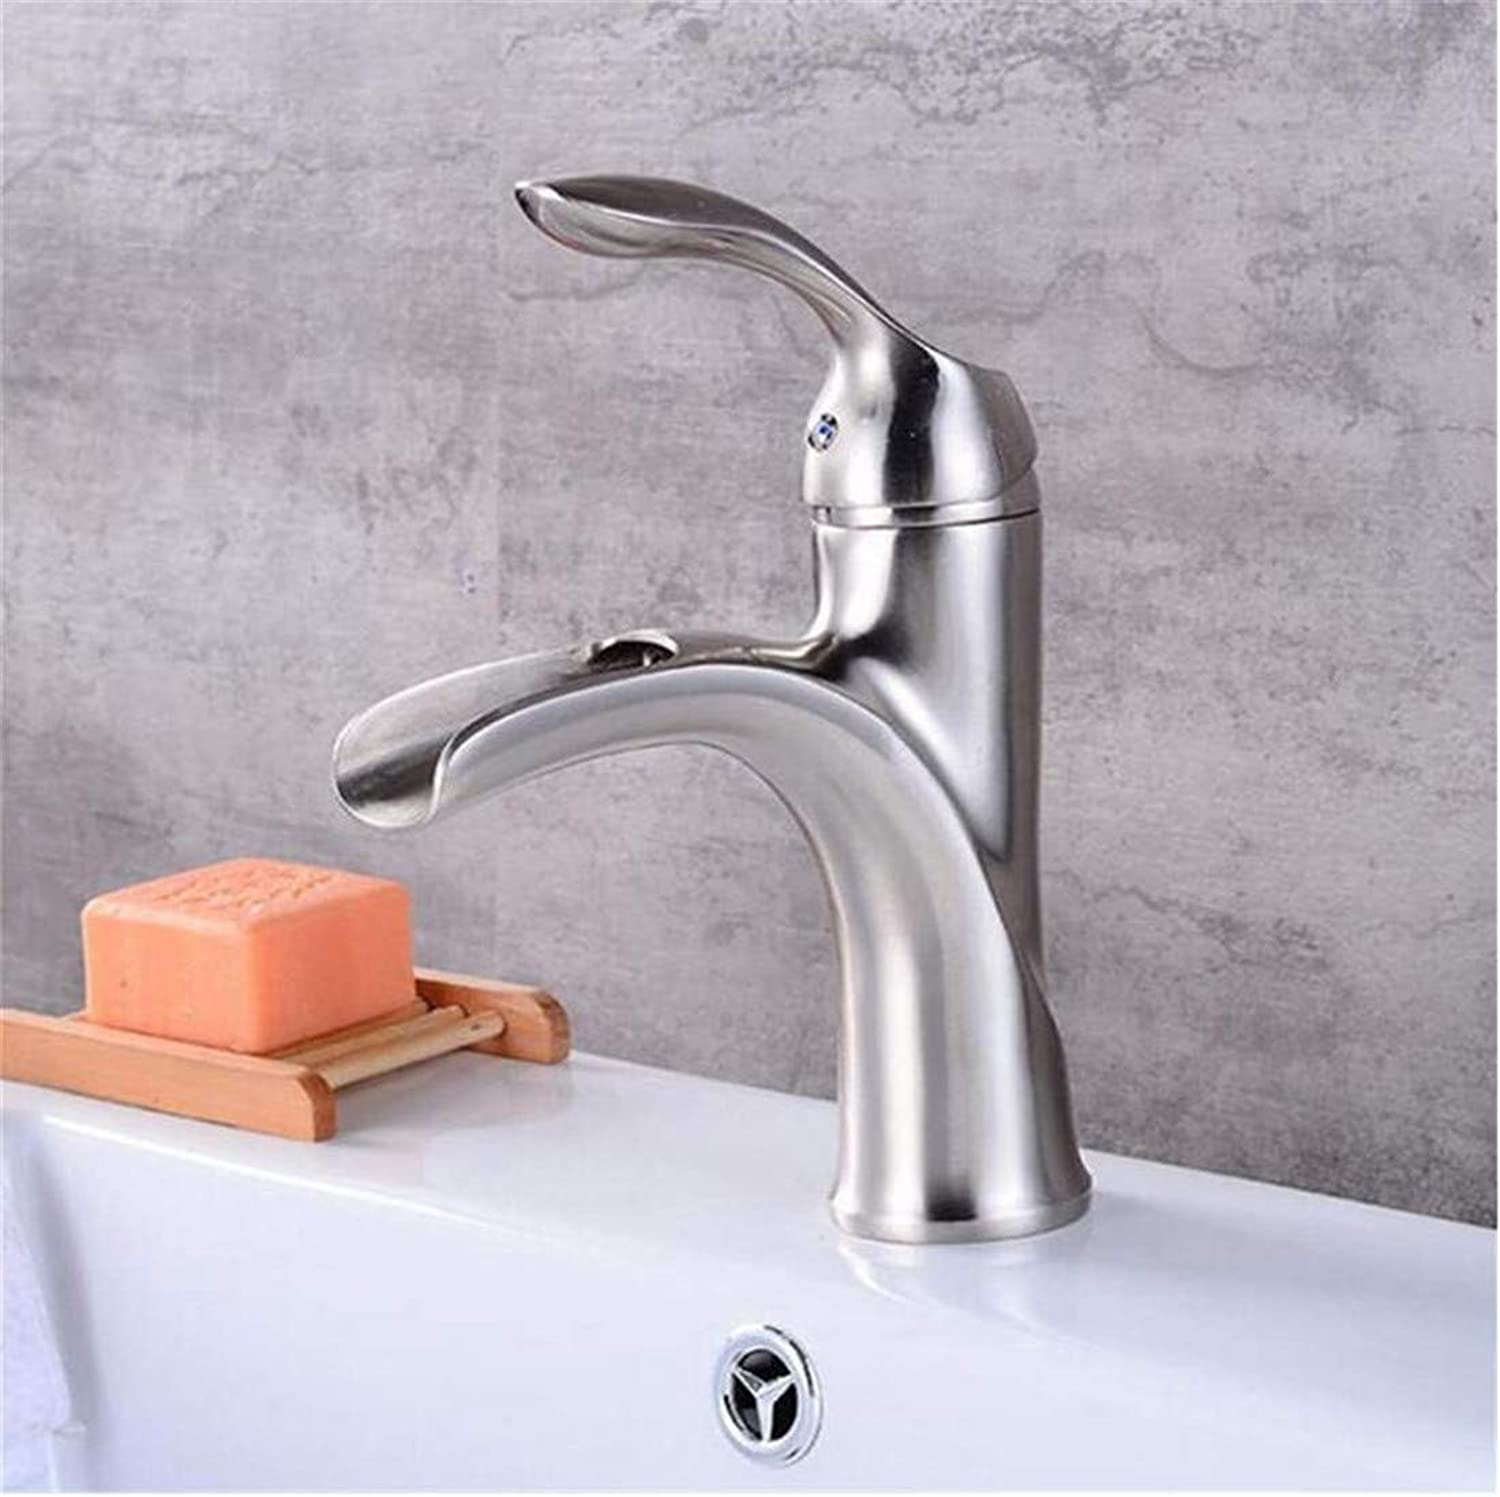 Retro Hot and Cold Faucet Luxury Mixer Platingfaucets Basin Mixer Oil Rubbed Bronze Brushed Nickel Brass Bathroom Waterfall Faucet